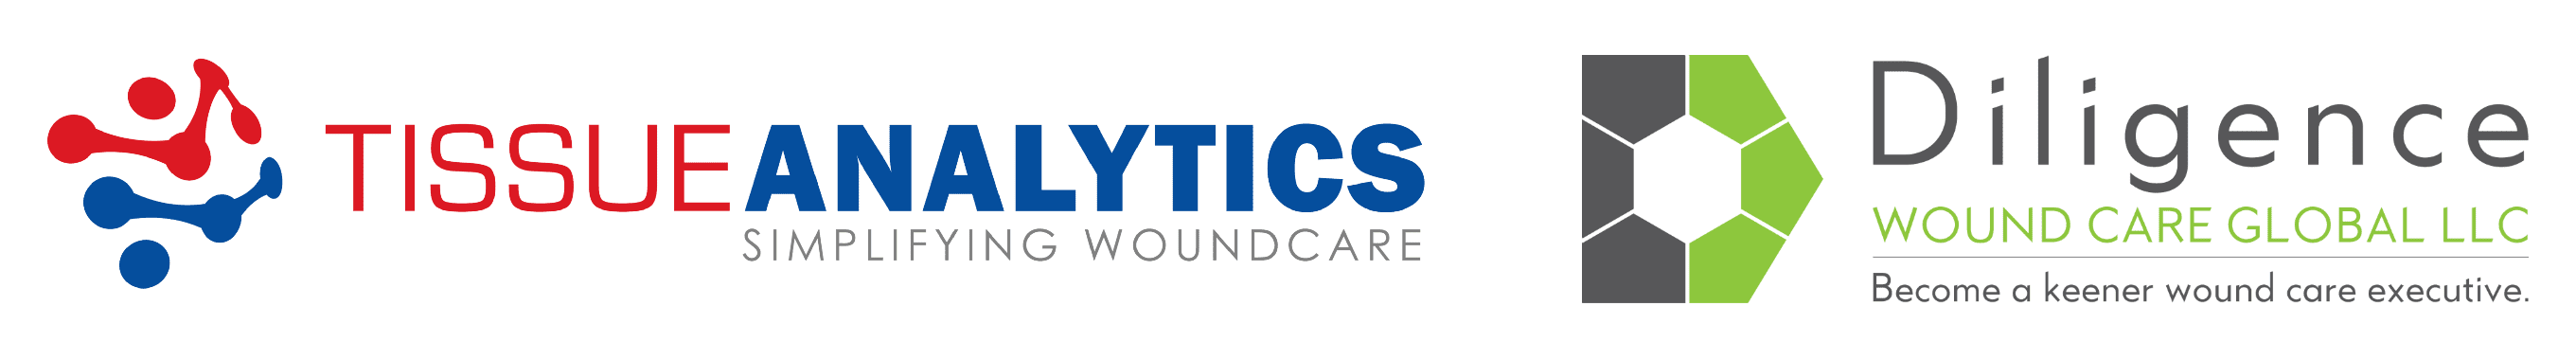 Diligence Wound Care Global Managing Director Rafael Mazuz Joins Tissue Analytics Board as Independent Director